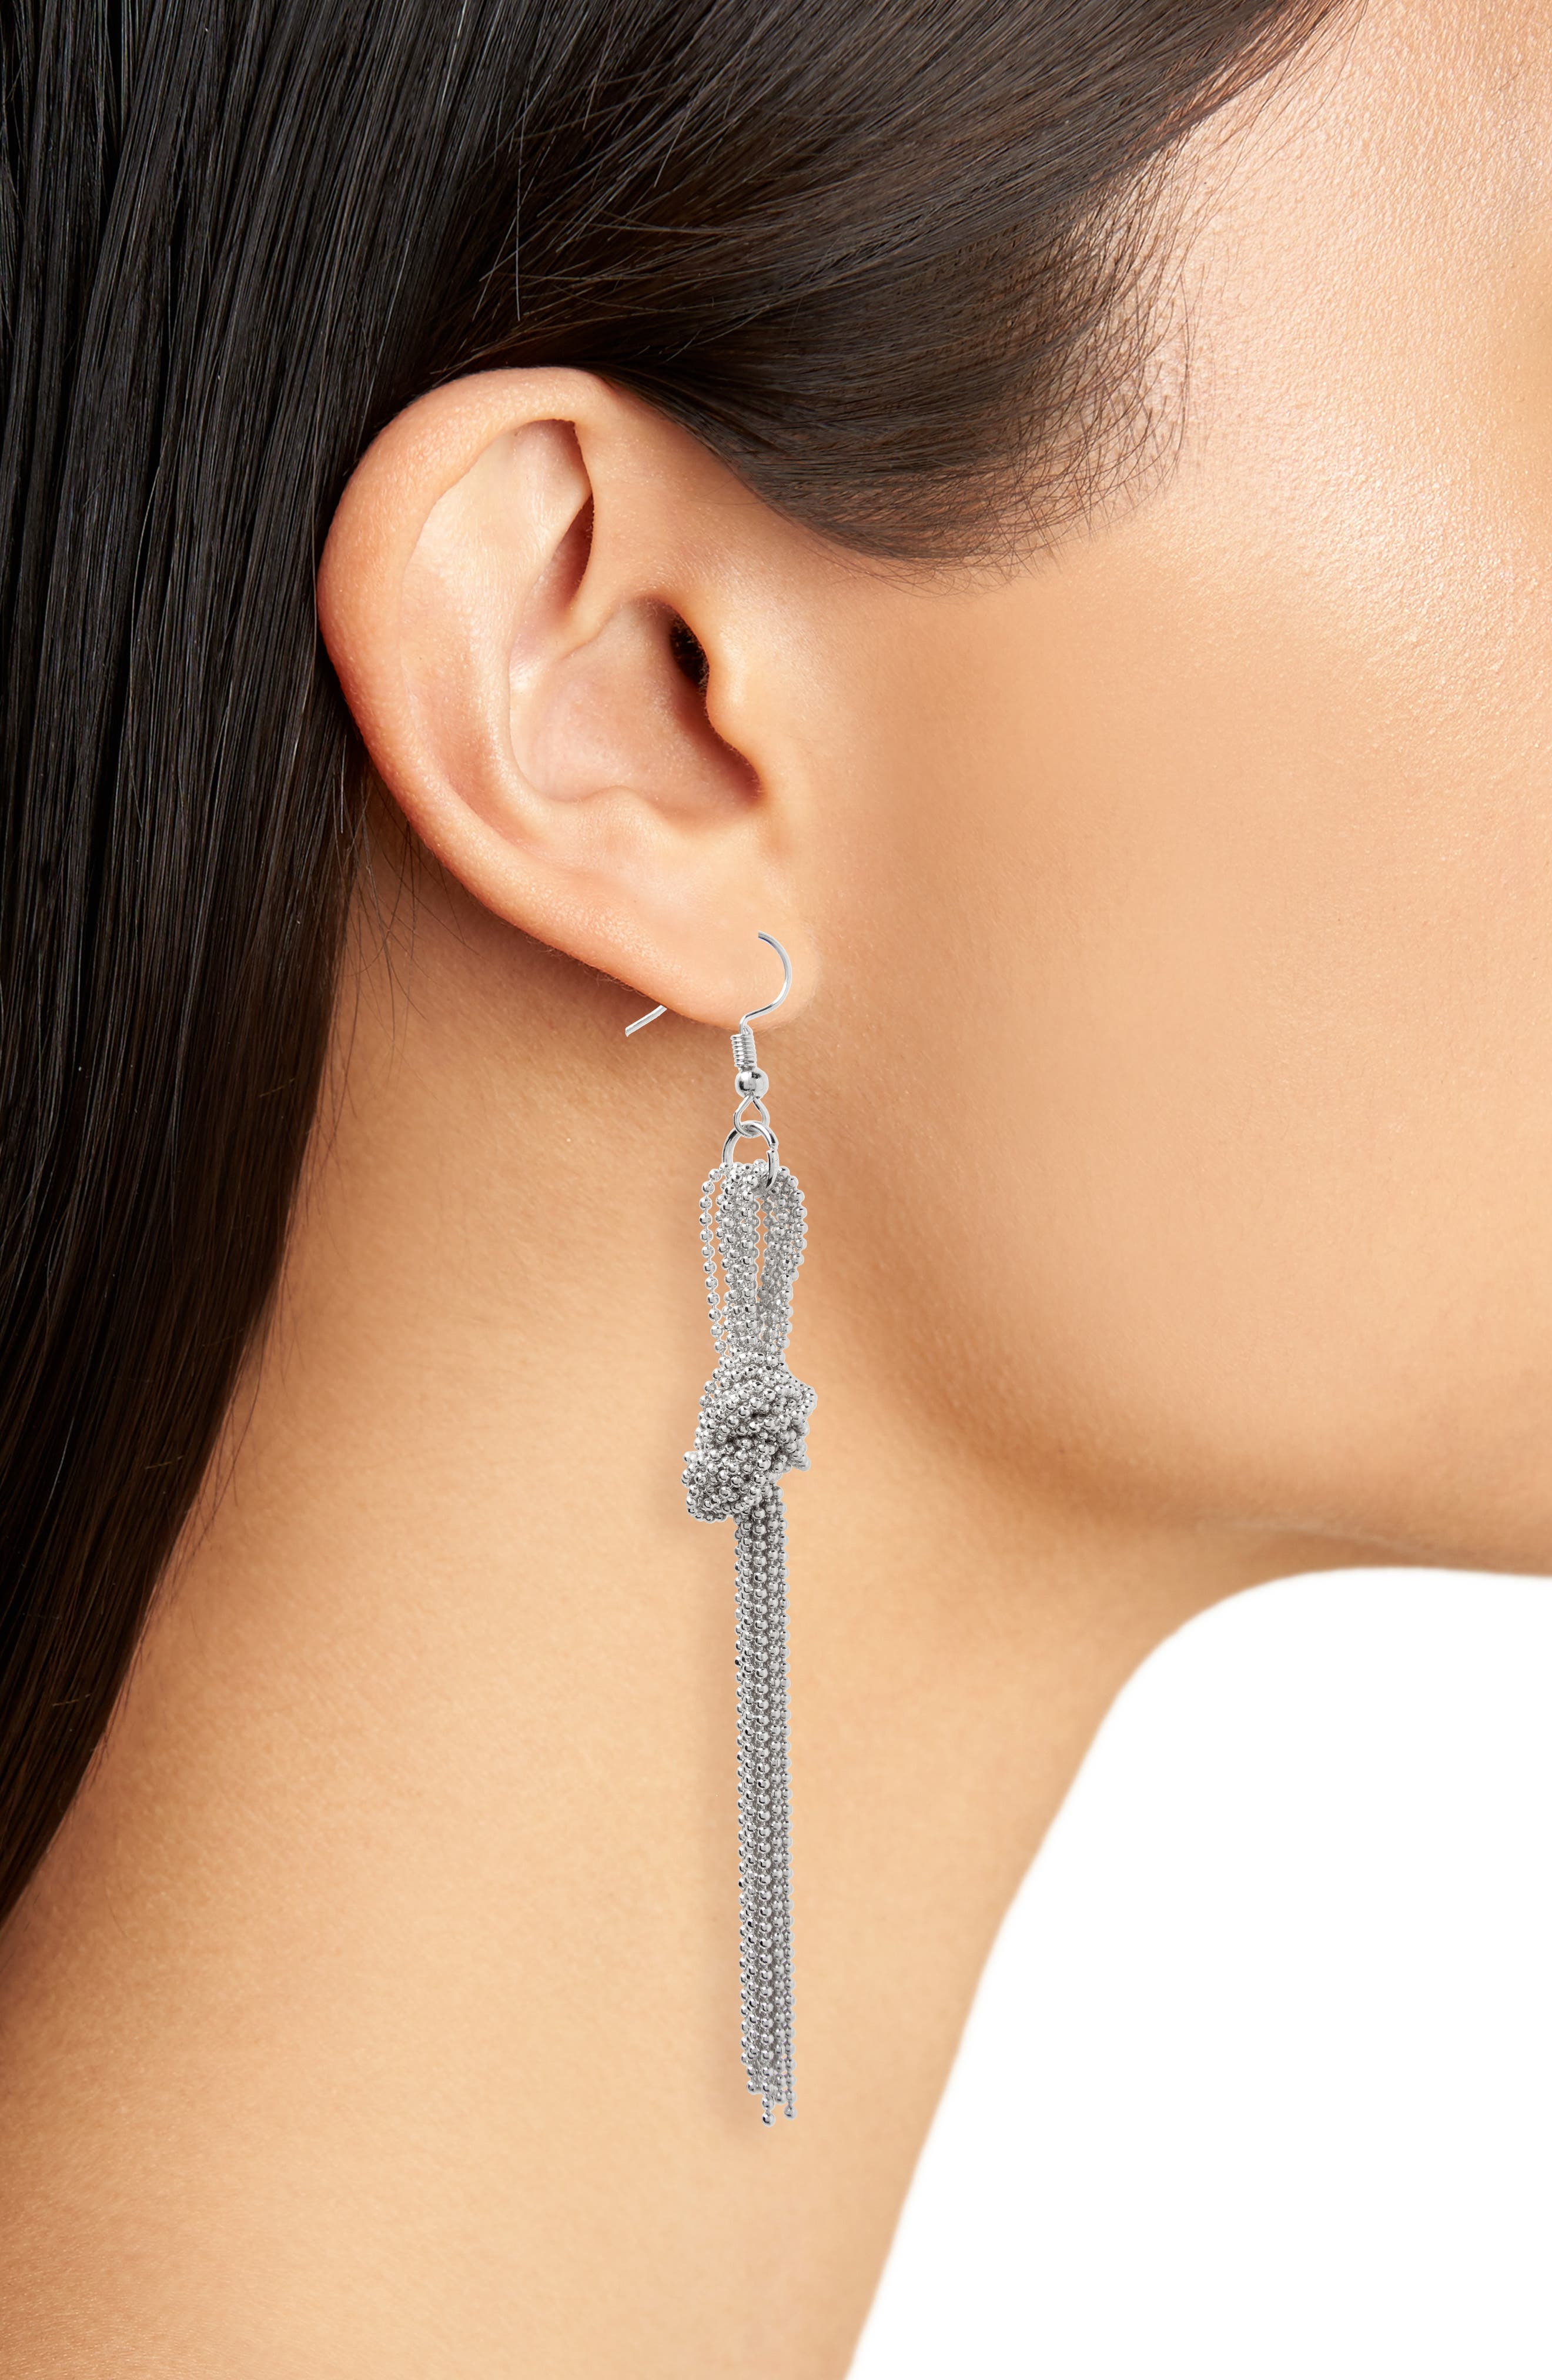 Knotted Bead Chain Linear Earrings,                             Alternate thumbnail 2, color,                             040